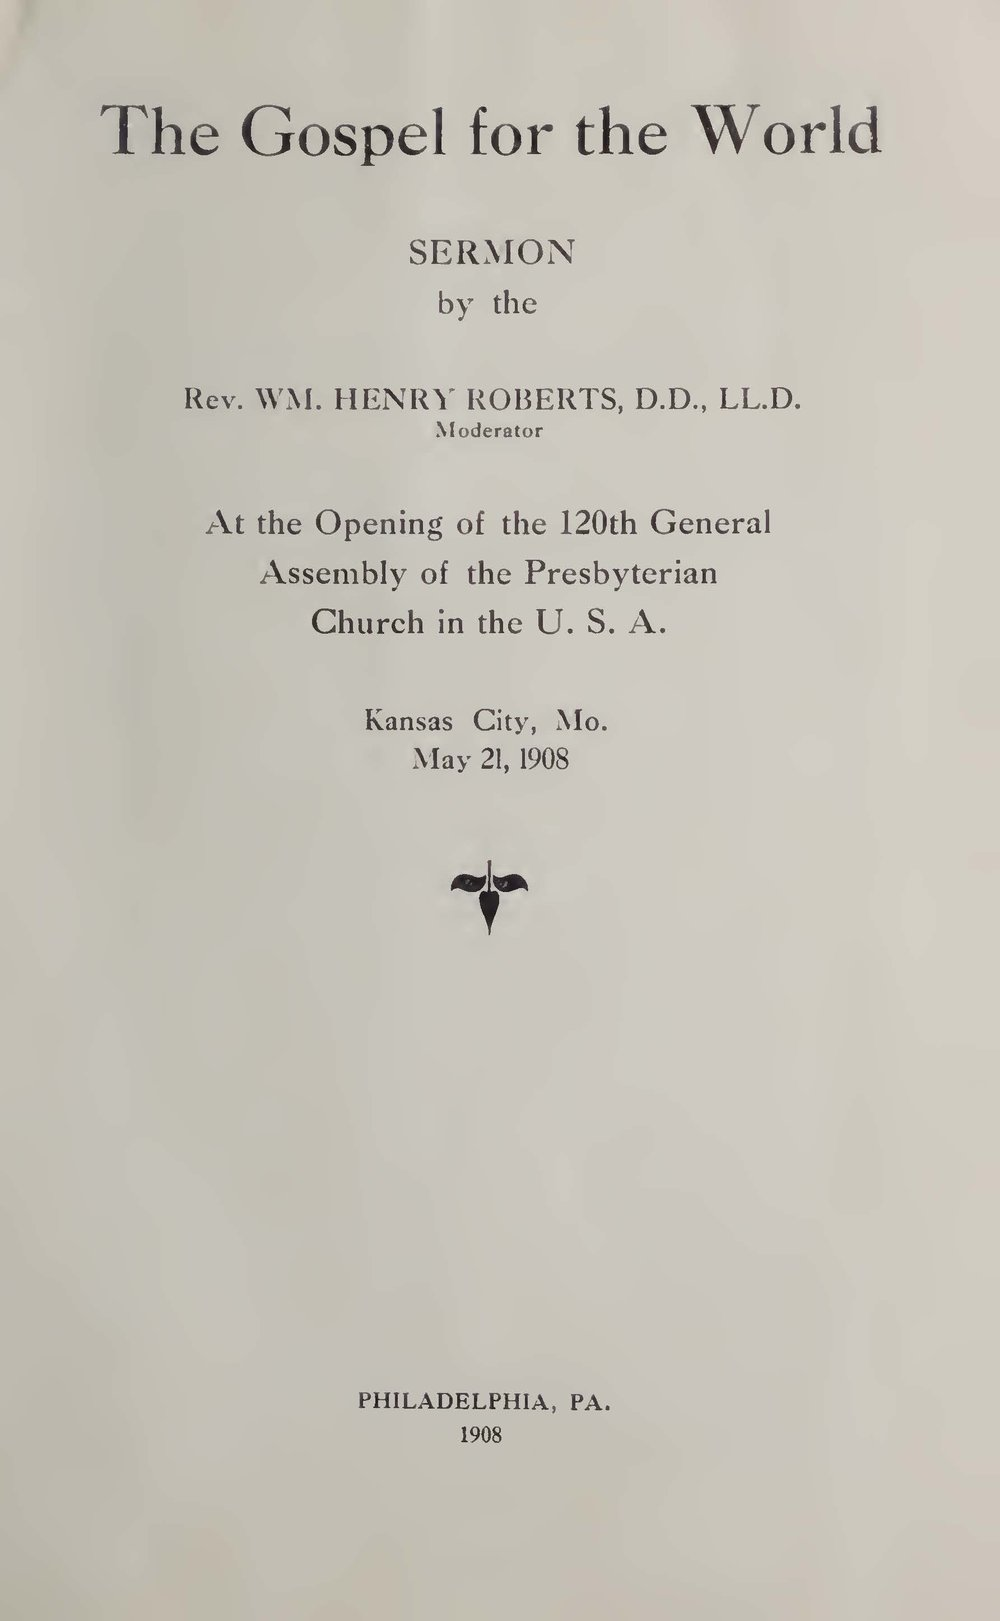 Roberts, William Henry, The Gospel for the World Title Page.jpg